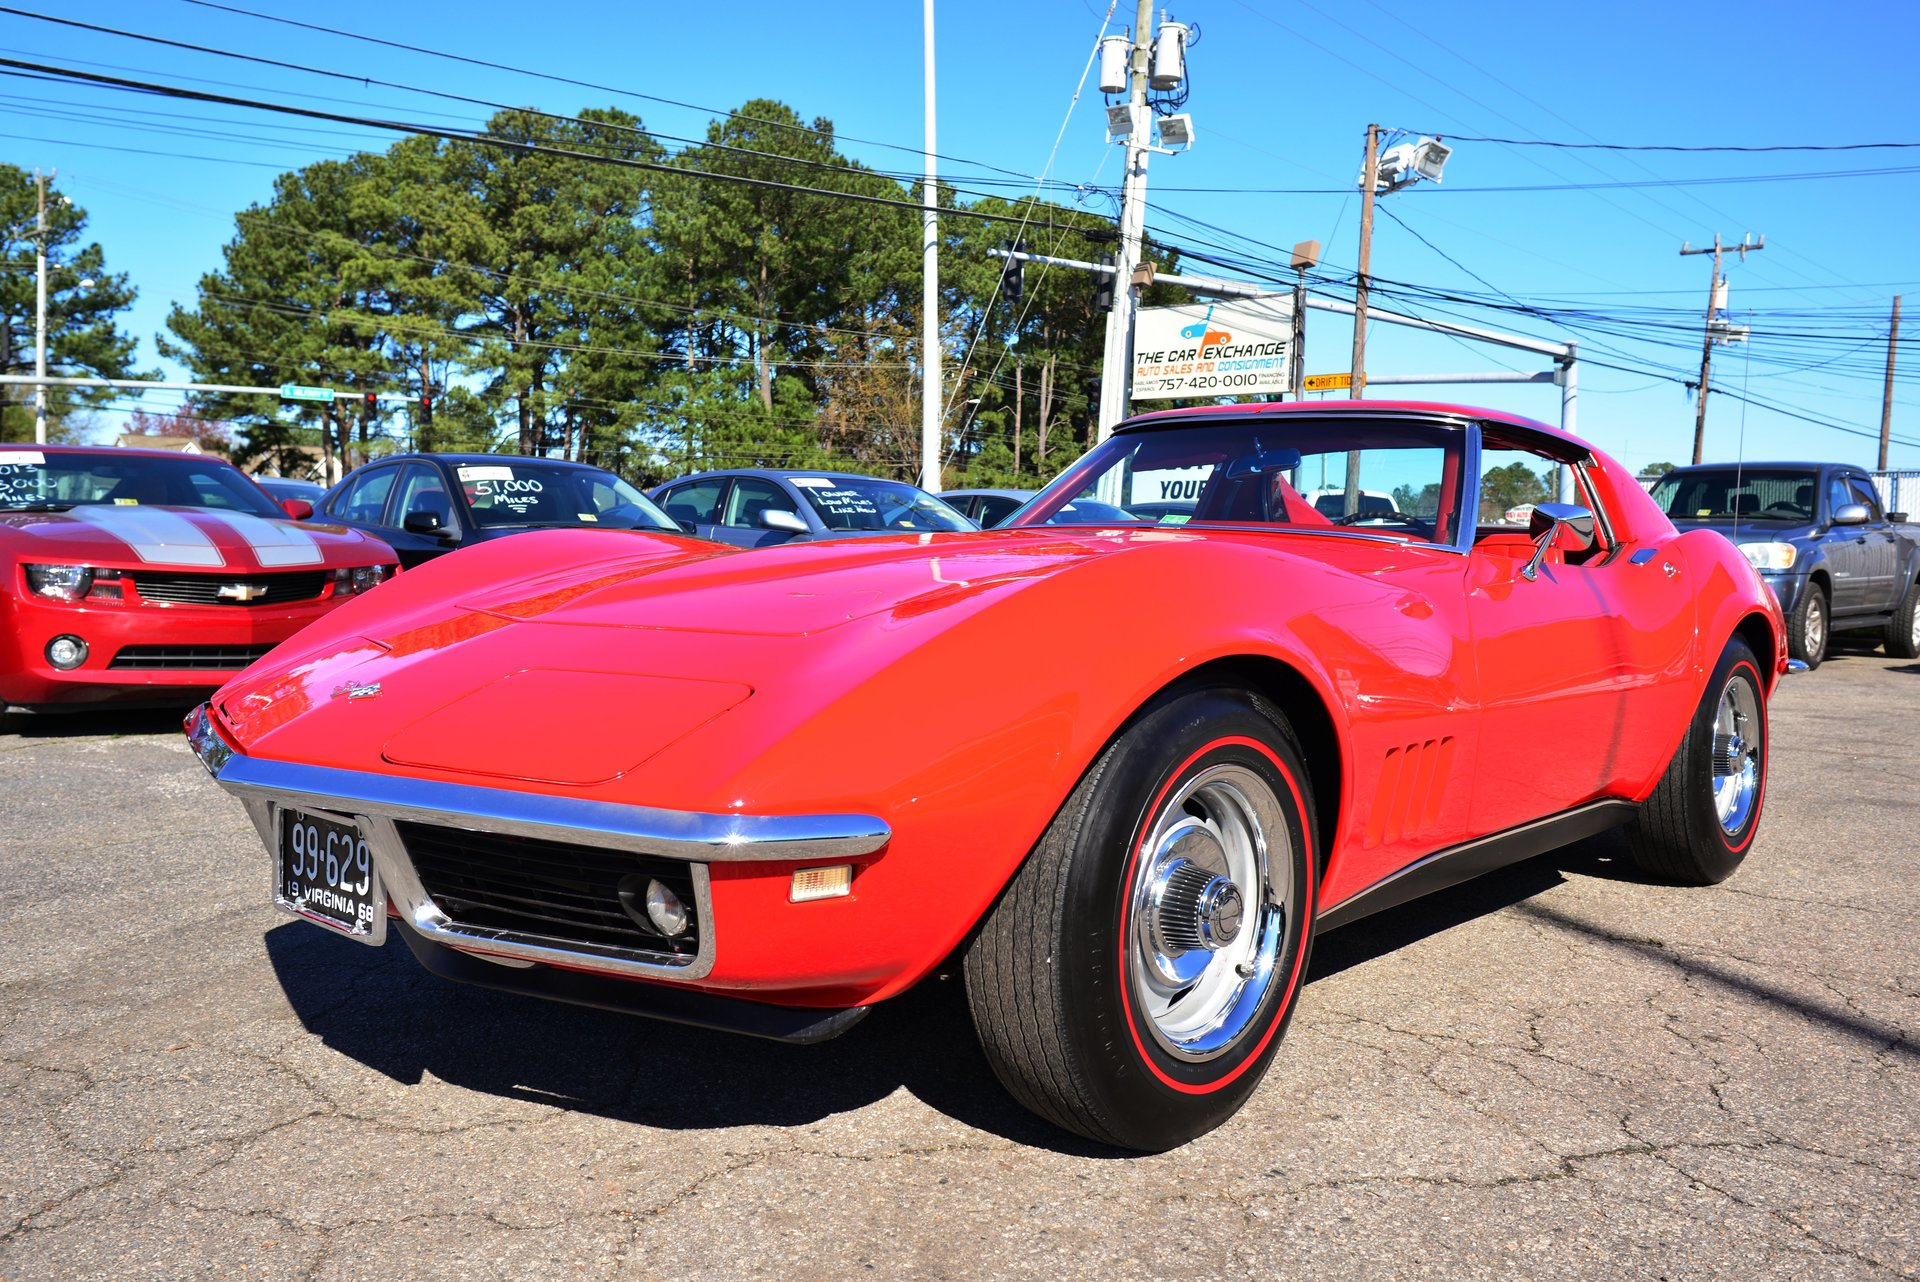 6547791a4321f_hd_1968-chevrolet-corvette-l79 Cool Review About Corvettes for Sale In Md with Extraordinary Images Cars Review